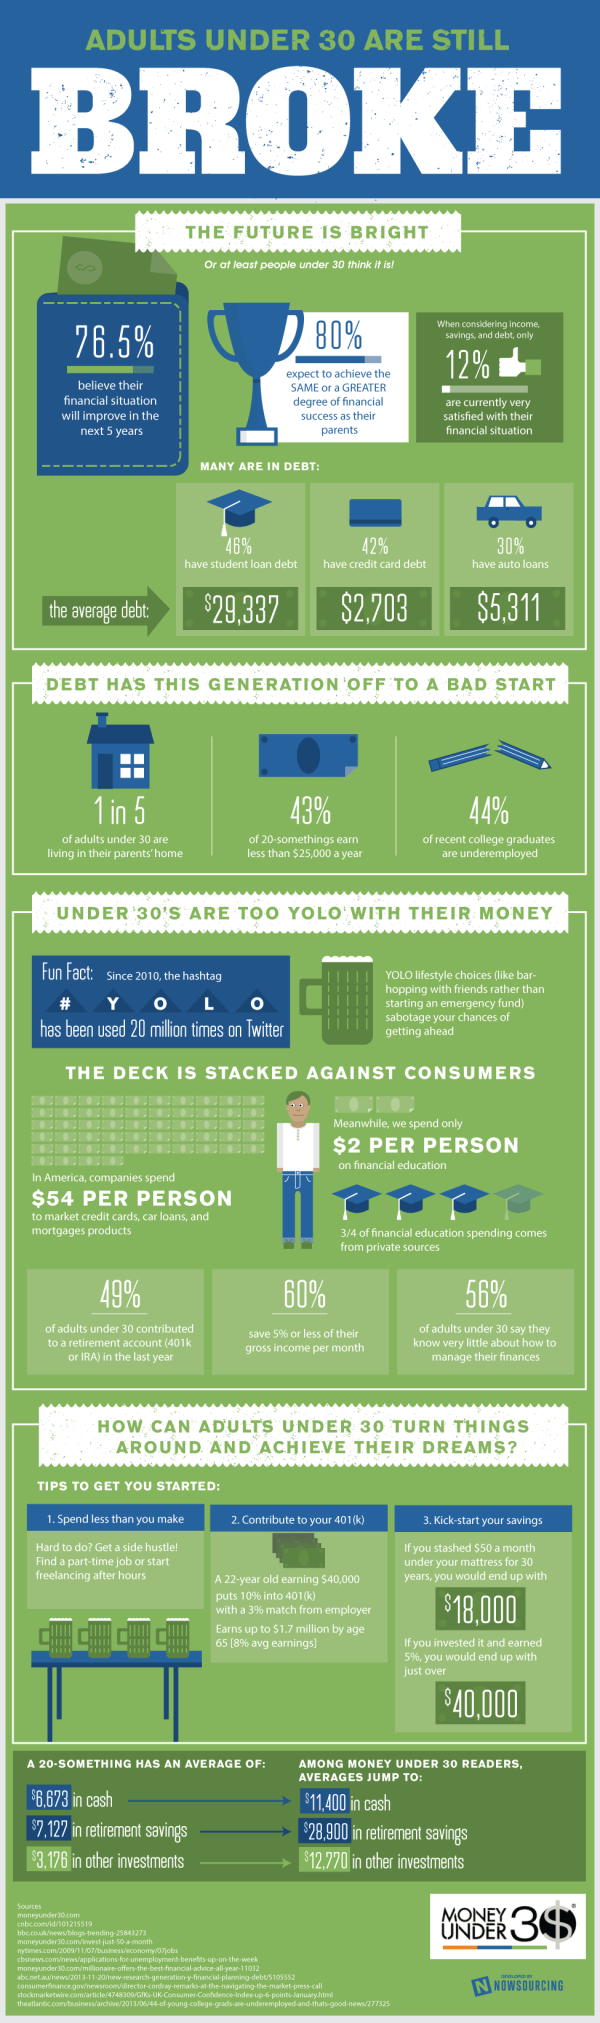 Adults Under 30 Are Broke...But Optimistic